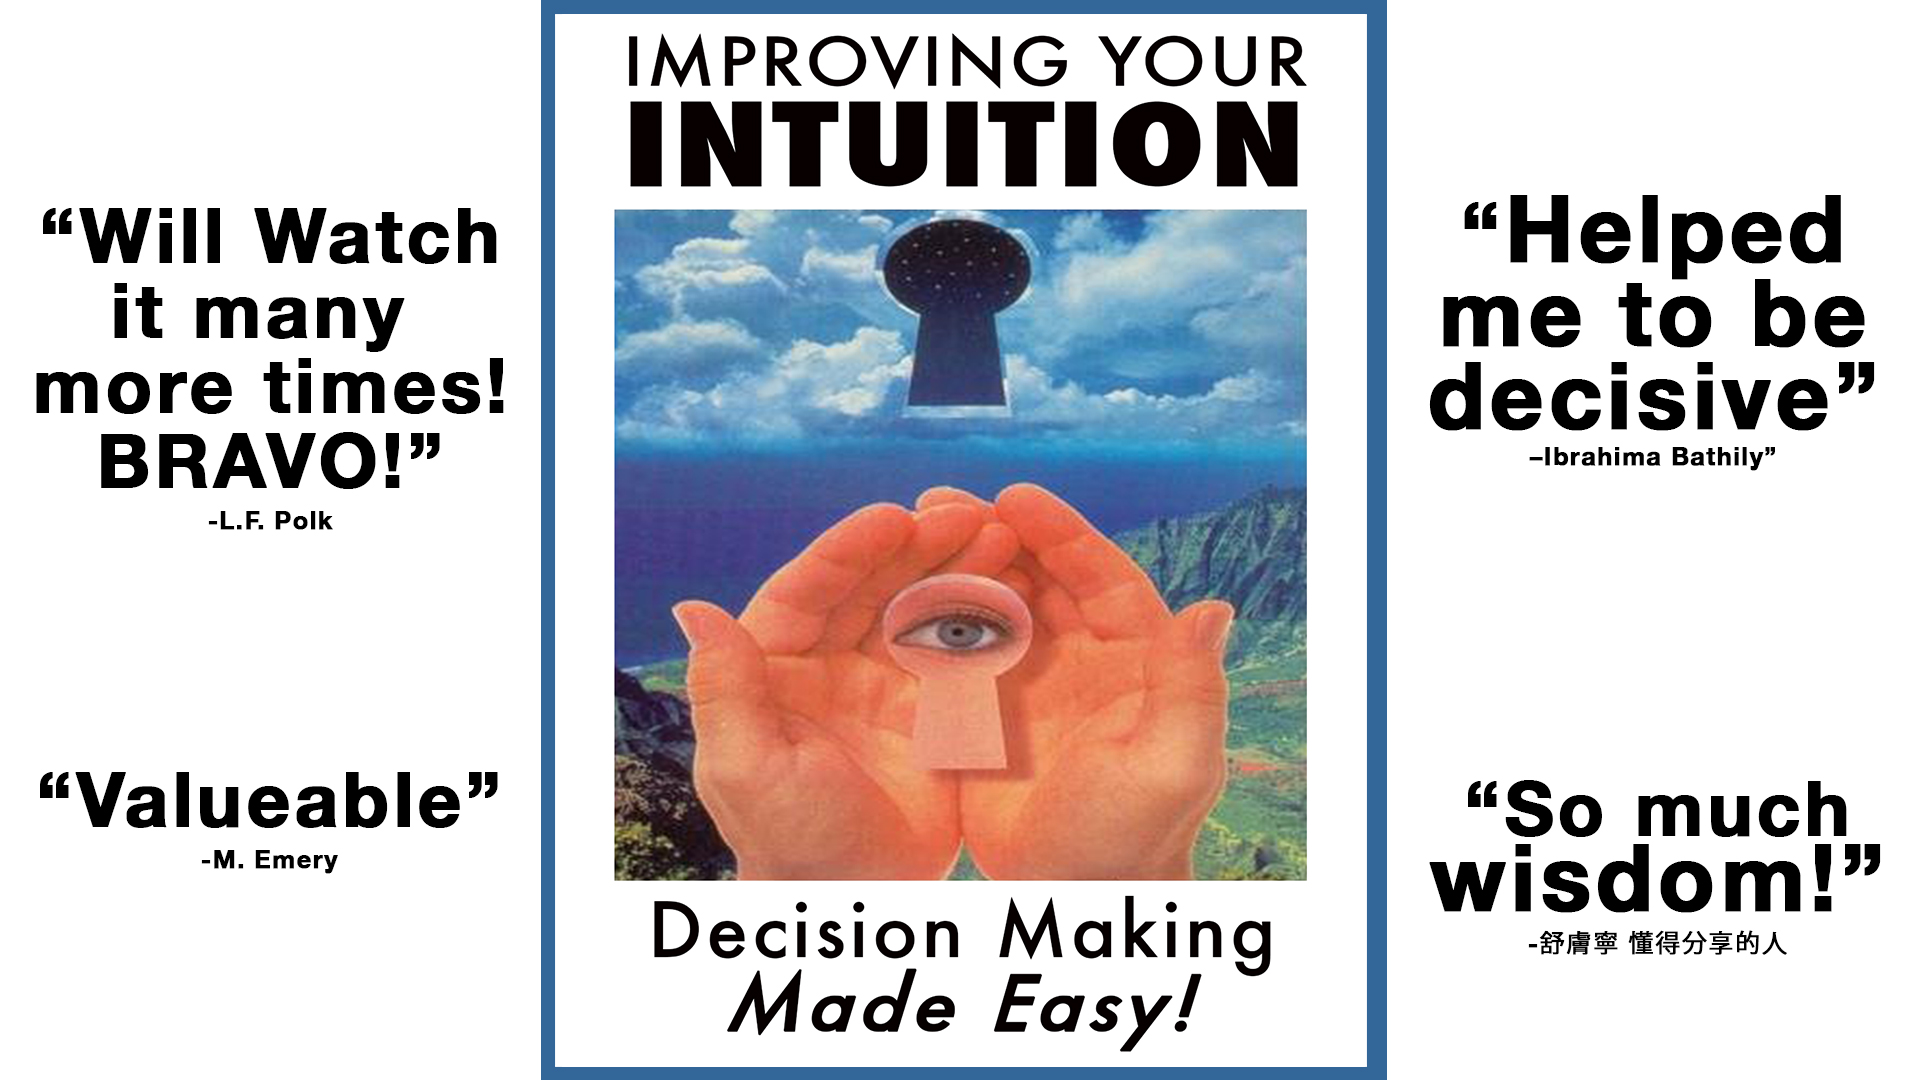 Improving Your Intuition: Decision Making Made Easy!